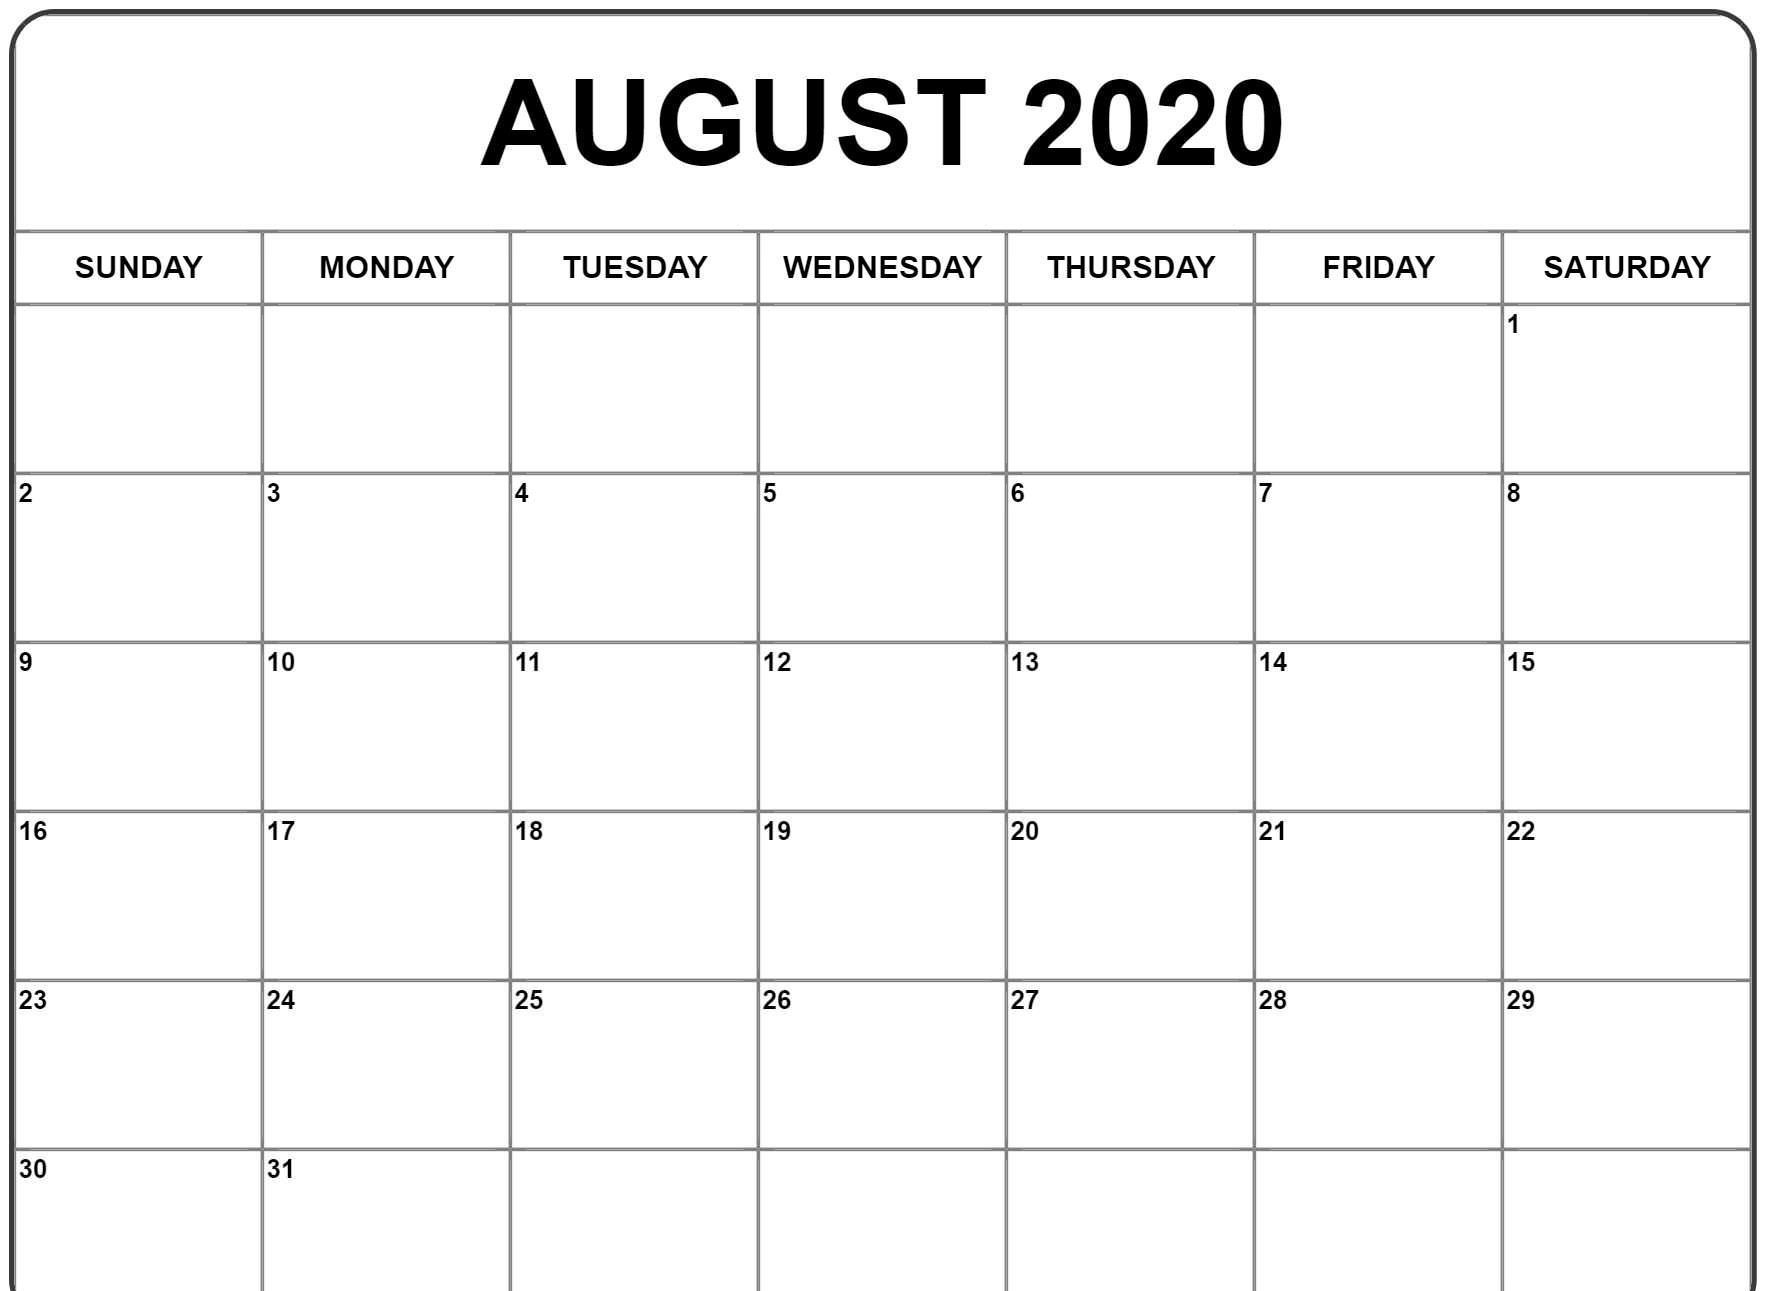 August 2020 Calendar Template In 2020 | 2020 Calendar with regard to 2020 Calendar To Fill In